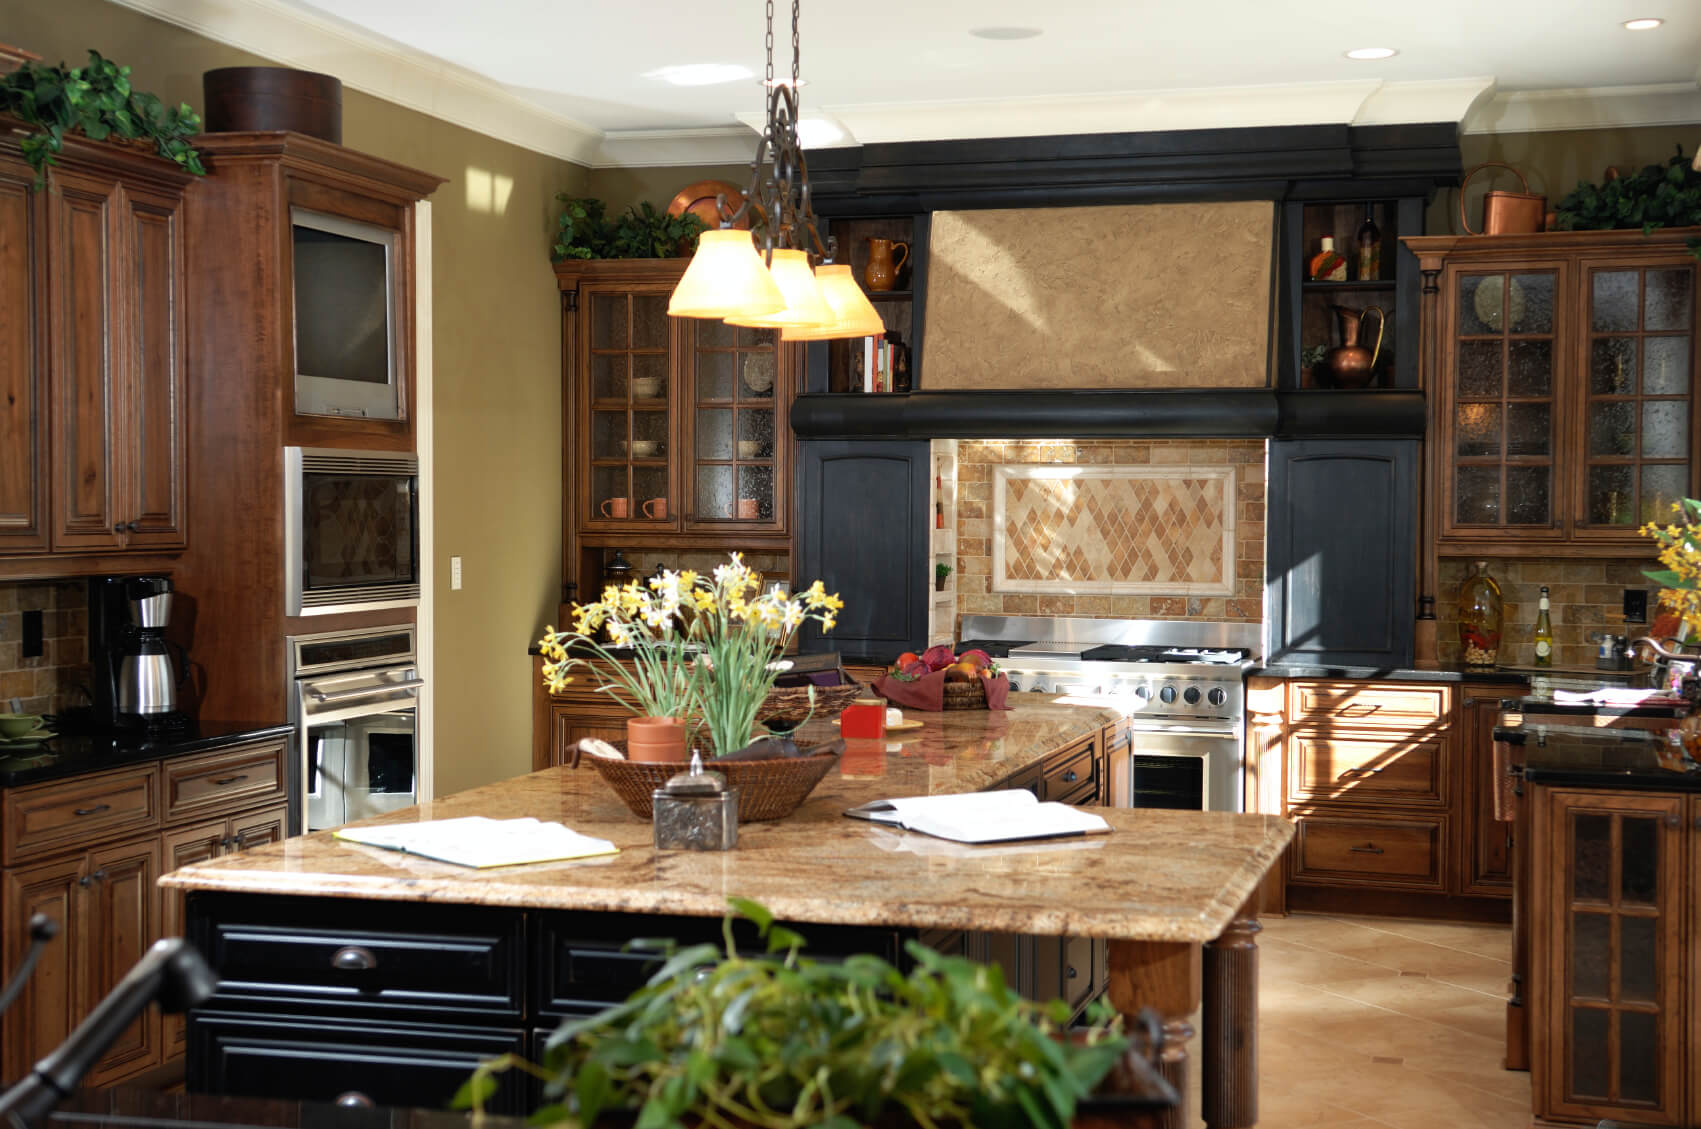 Black Wood Cabinetry Surrounds Range With Beige Tile Backsplash In This  Detailed Kitchen. L